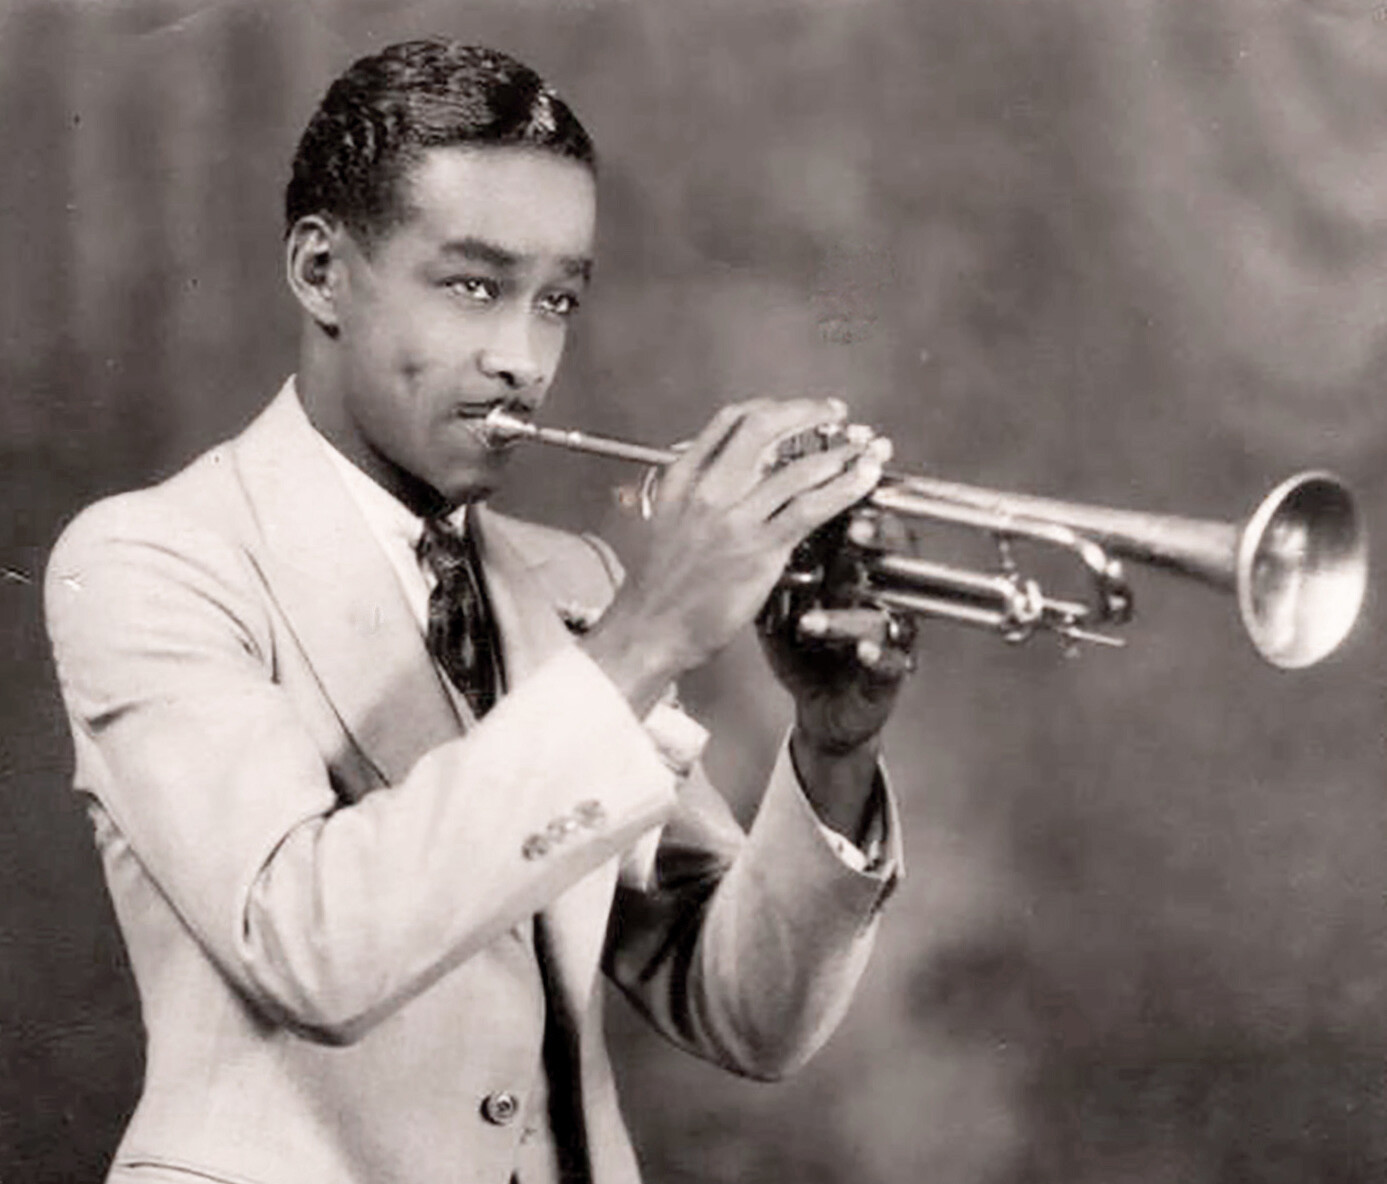 First professional trumpet gig in 1933 at age 21.